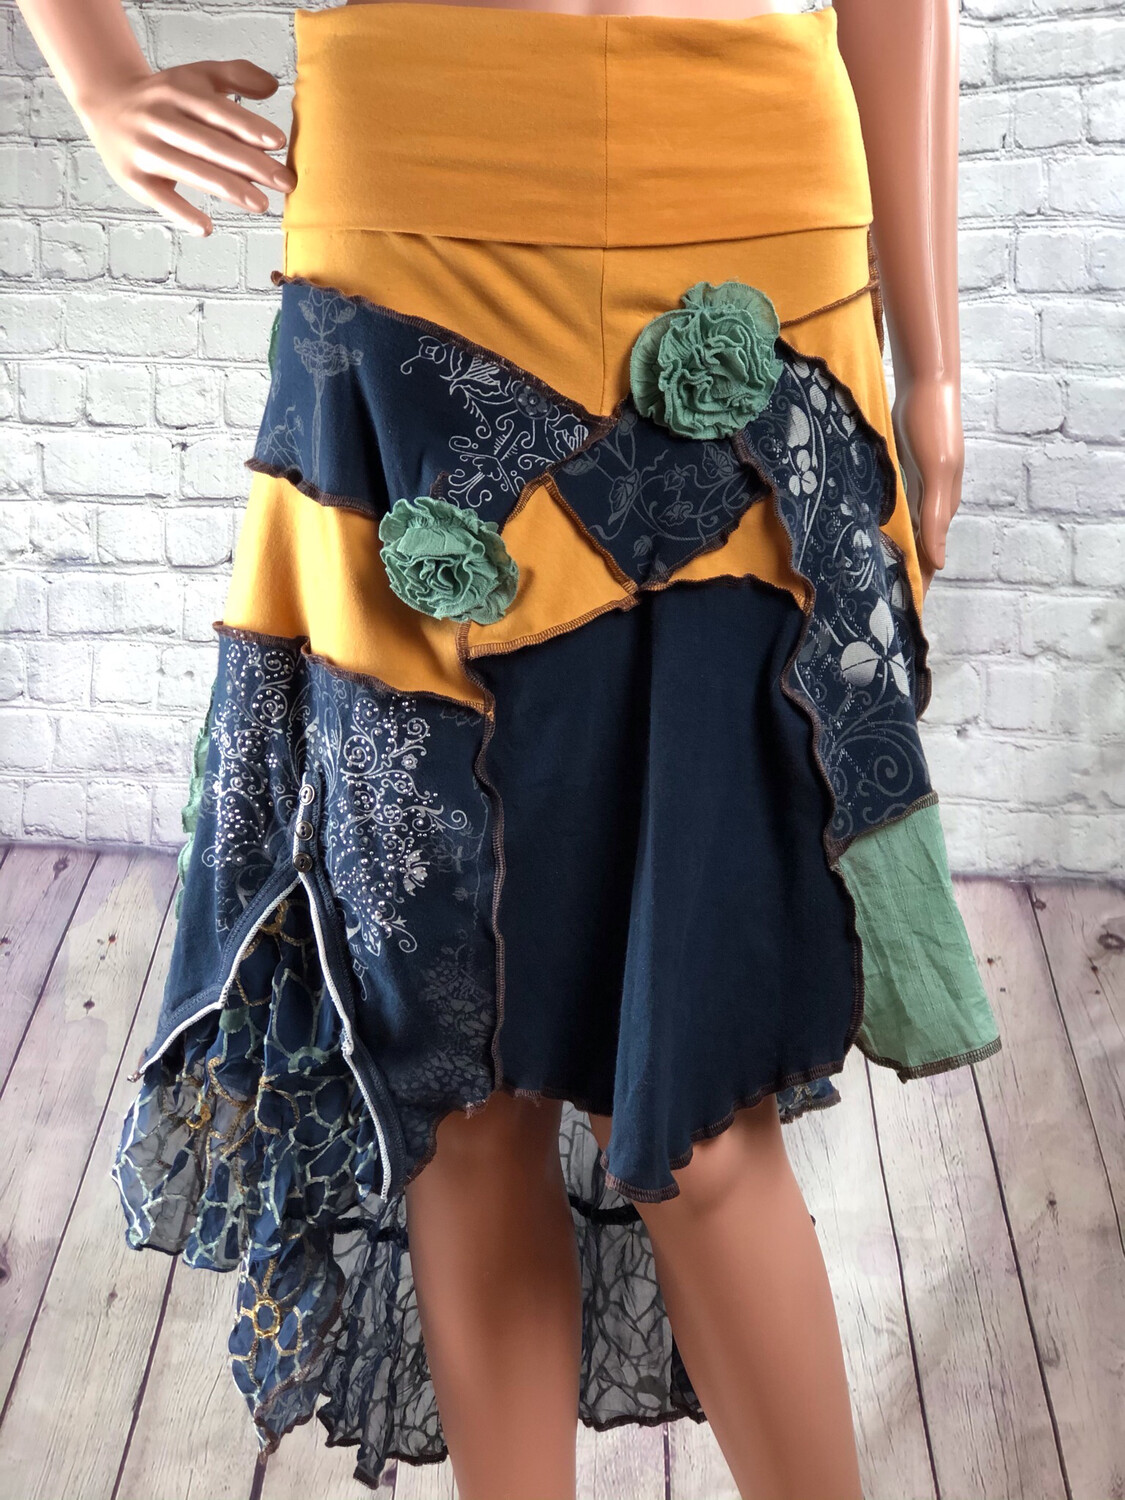 Gold Yellow Blue Sustainable Fashion Floral Flare Skirt Velvet, Cotton Comfort Yoga Stretch Band Upcycled OoAK Eco Wear size M / L